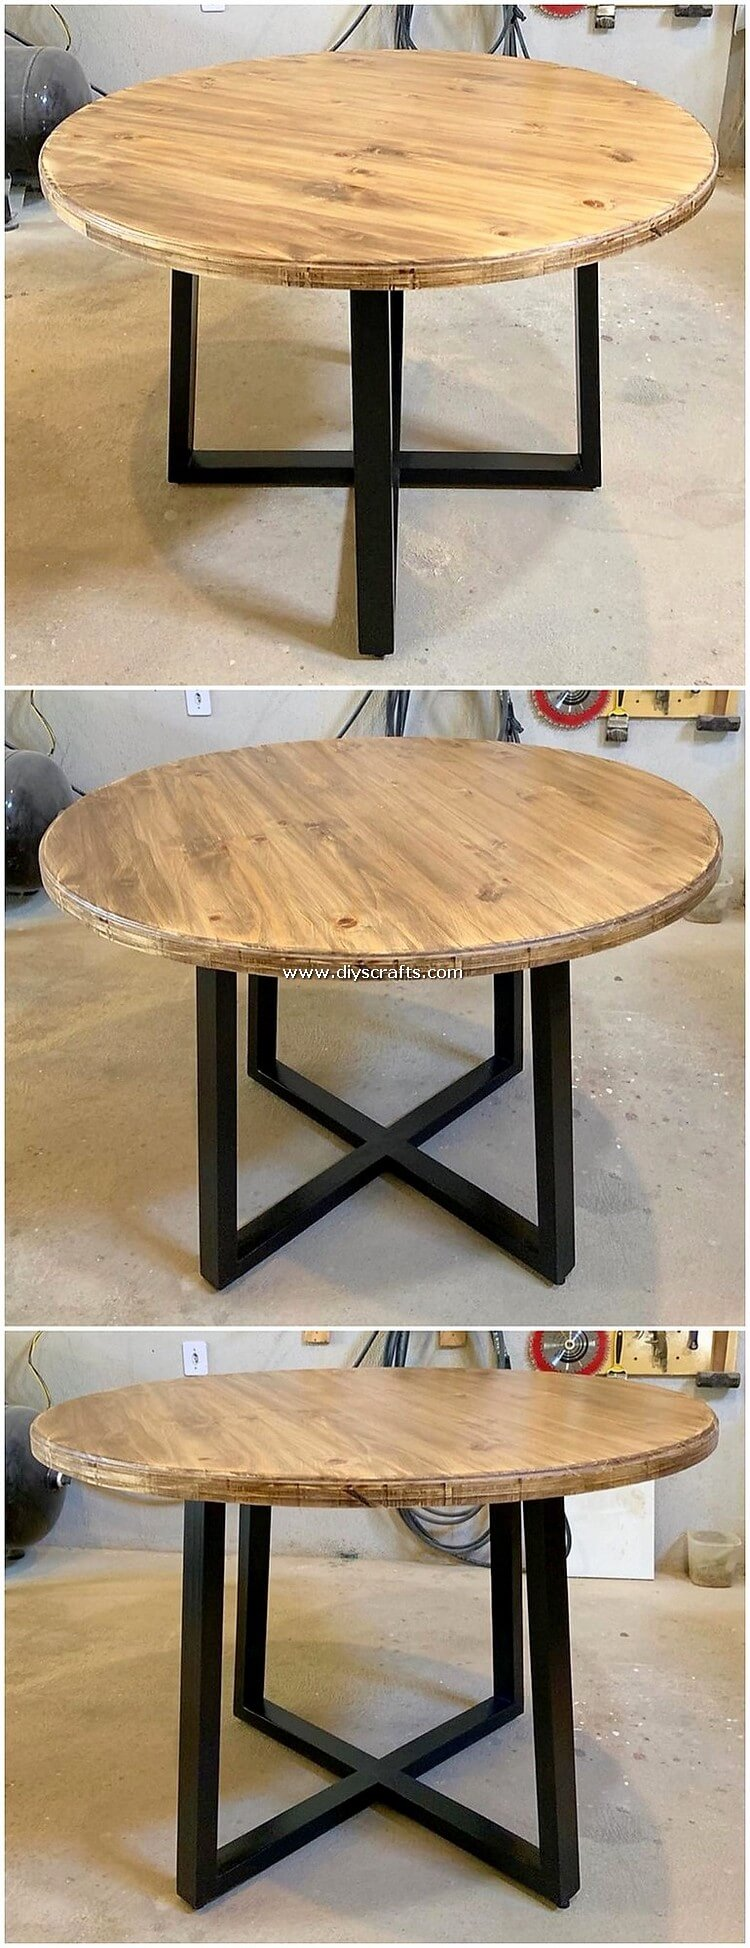 Round-Top-Pallet-Table-1